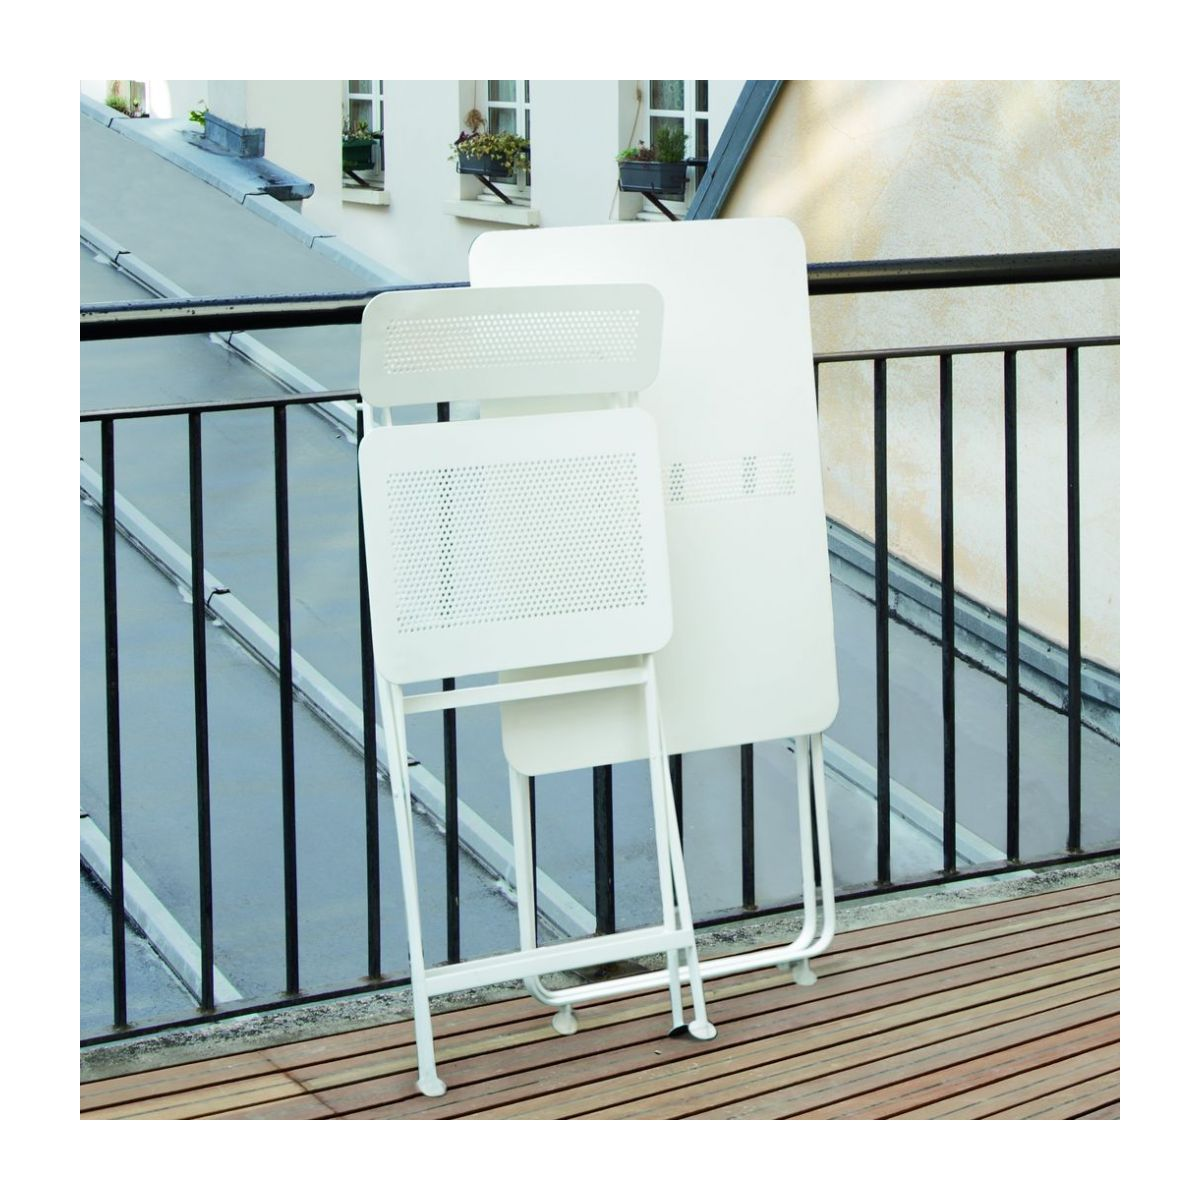 Mesa plegable de metal - Blanco n°8